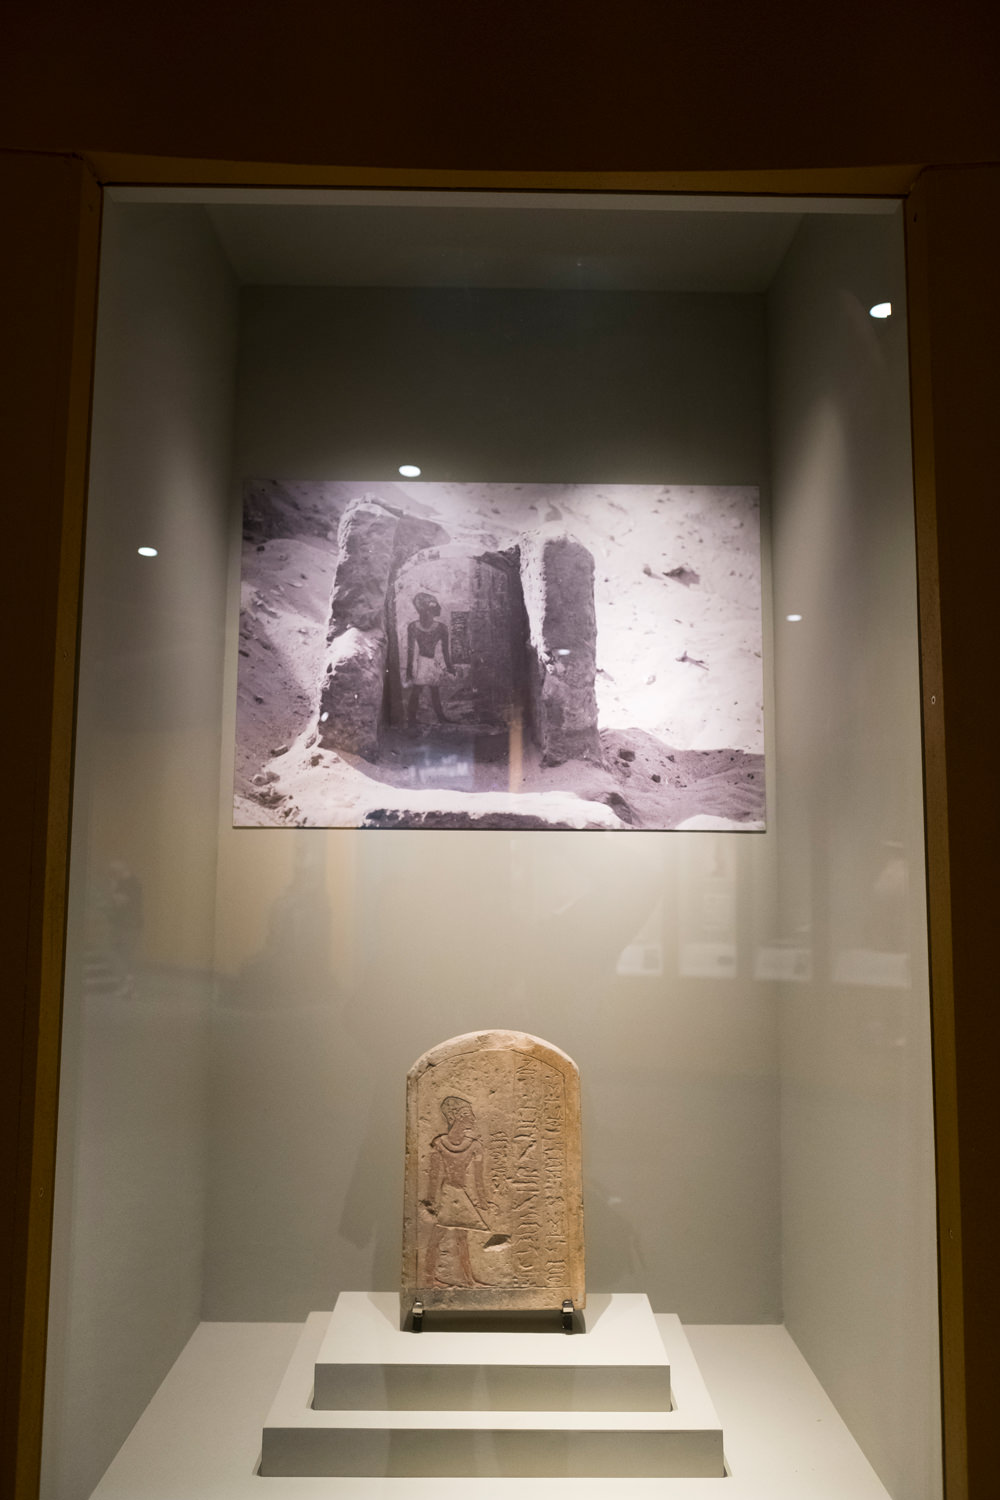 A carved, painted funerary stela in a display case with an old photo of it in situ when it was first discovered above it